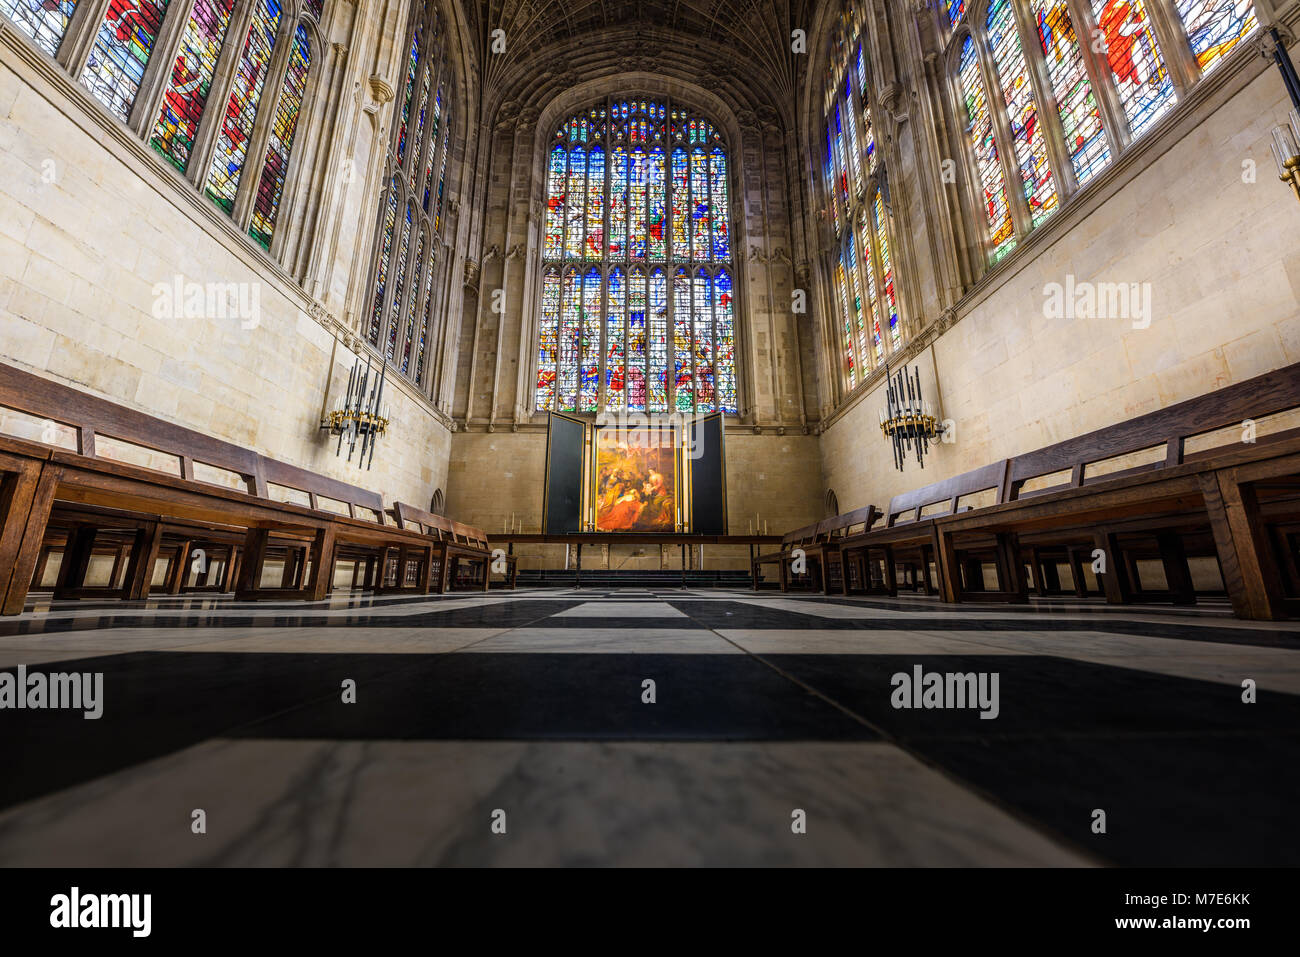 The choir with its floor, stained glass windows, altar, and painting by Rubens in the chapel at King's college, - Stock Image